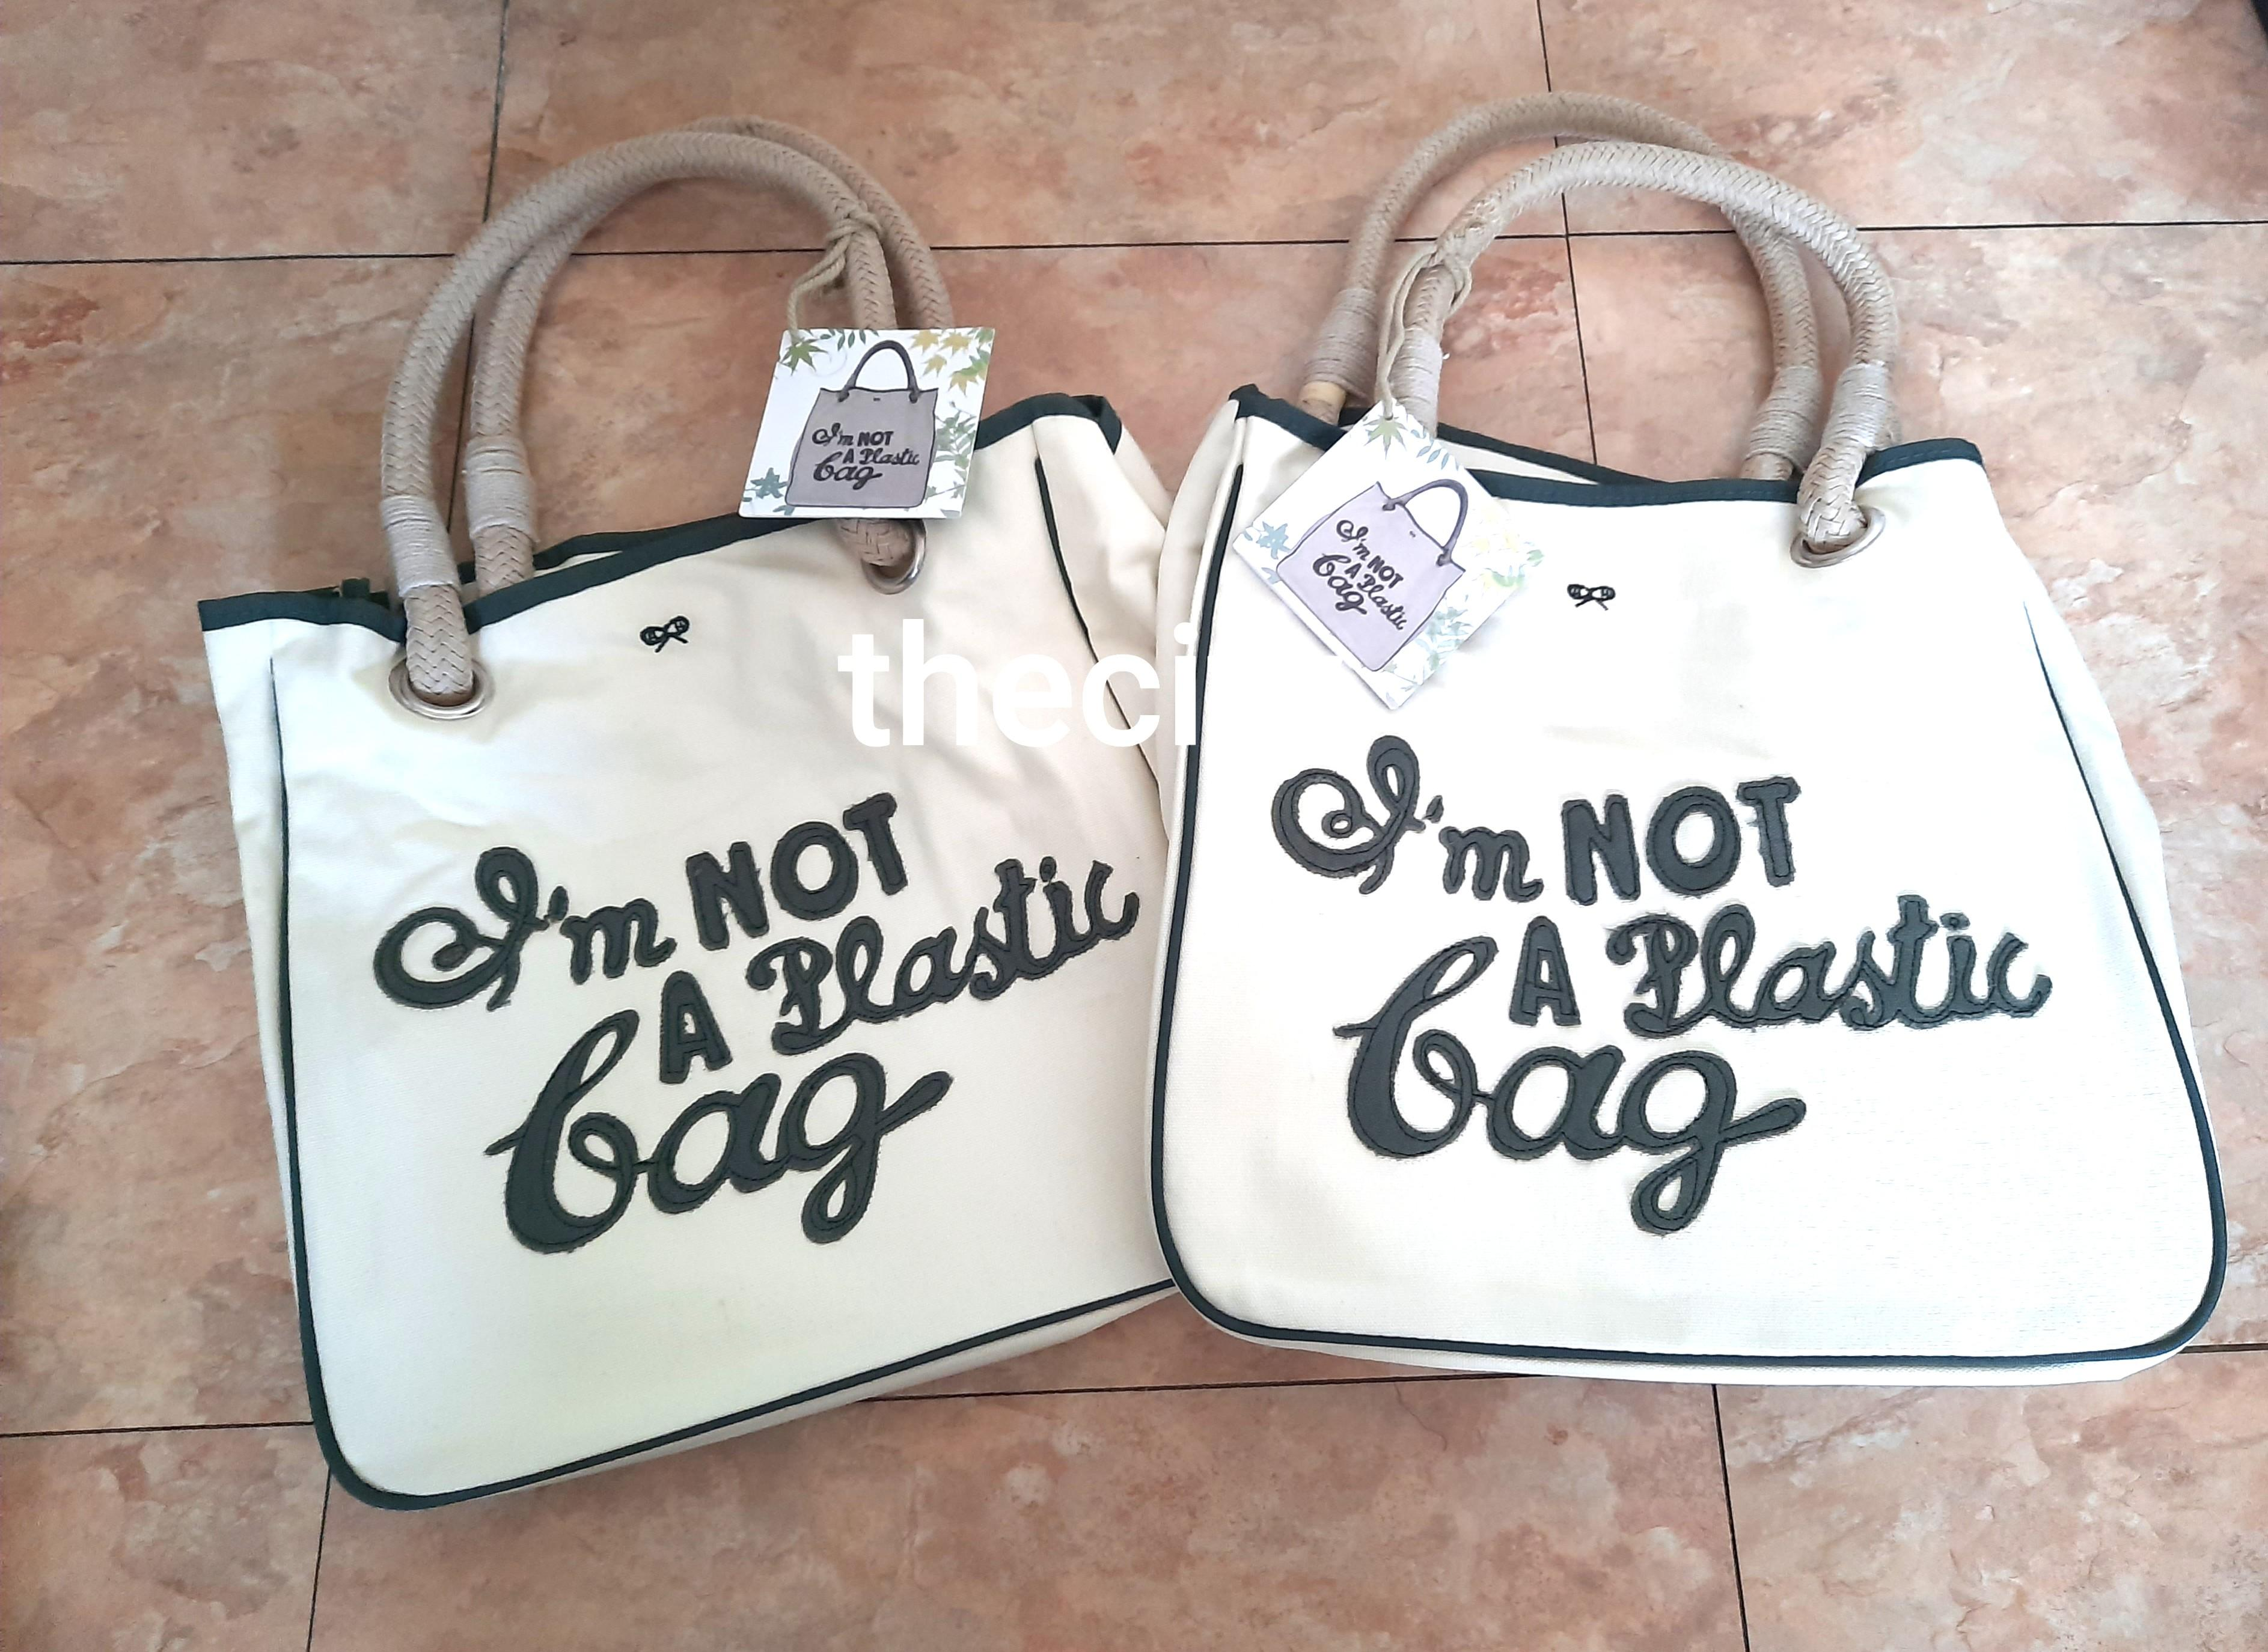 "PREORDER ITEM - BRAND NEW - AUTHENTIC ANYA HINDMARCH ""IM NOT A PLASTIC BAG"" TOTE BAG - RARE GREEN FONT JAPAN EDITION - NEVER BEEN USED - PREORDER ITEM FROM JAPAN -"